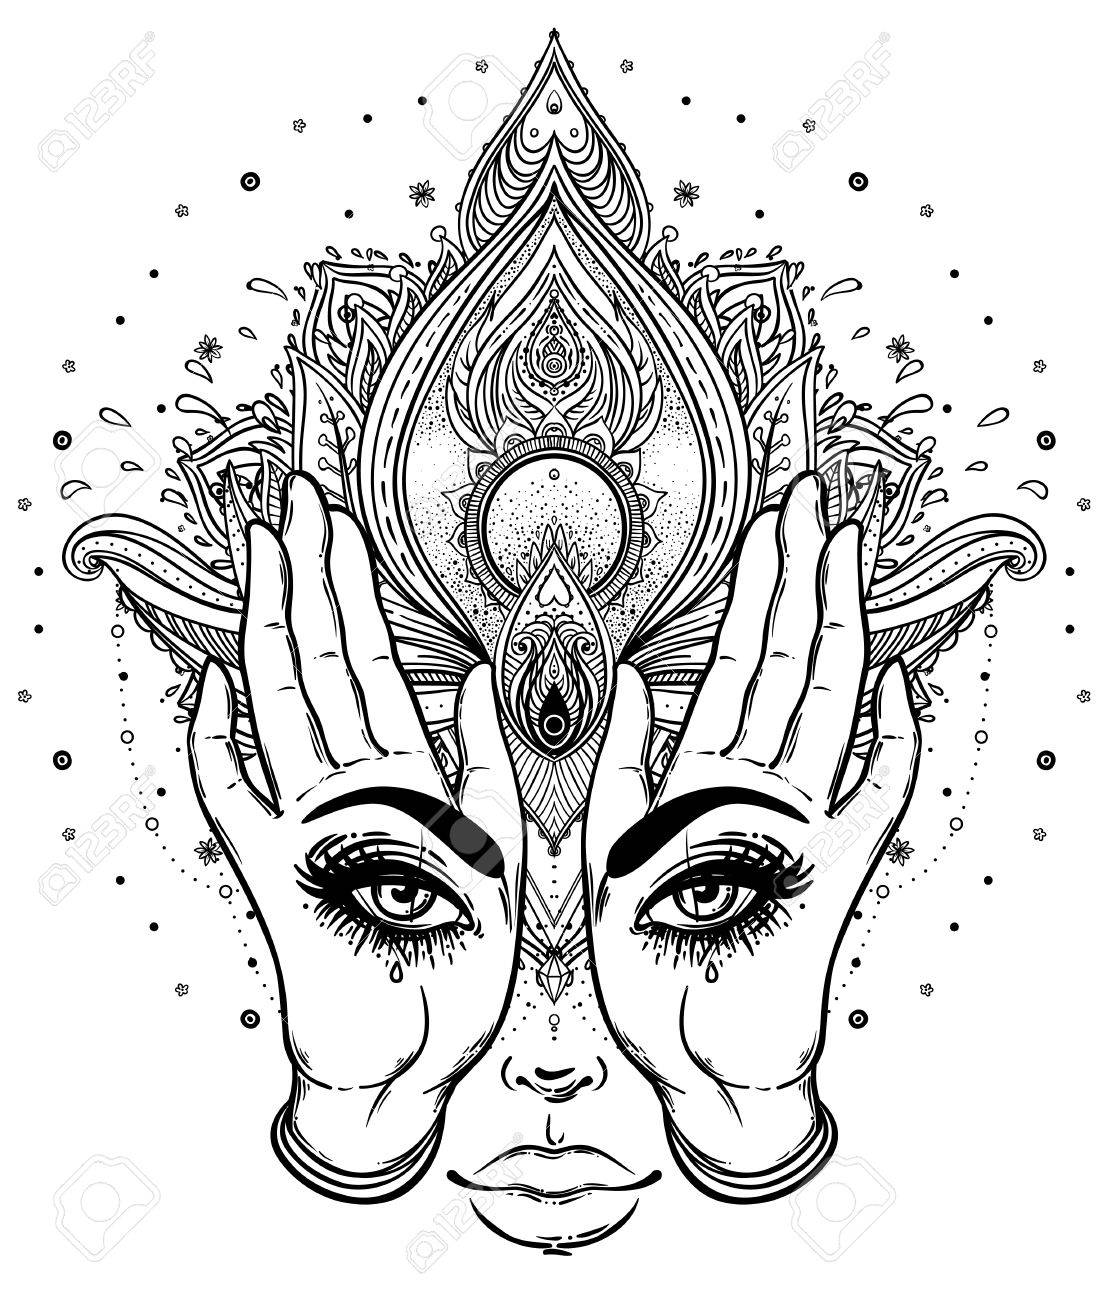 Mysterious creature with eyes on the hands over vector ornamental Lotus flower and praying hands, patterned Indian paisley. Invitation element. Tattoo, astrology, alchemy, boho and magic symbol. - 78830808